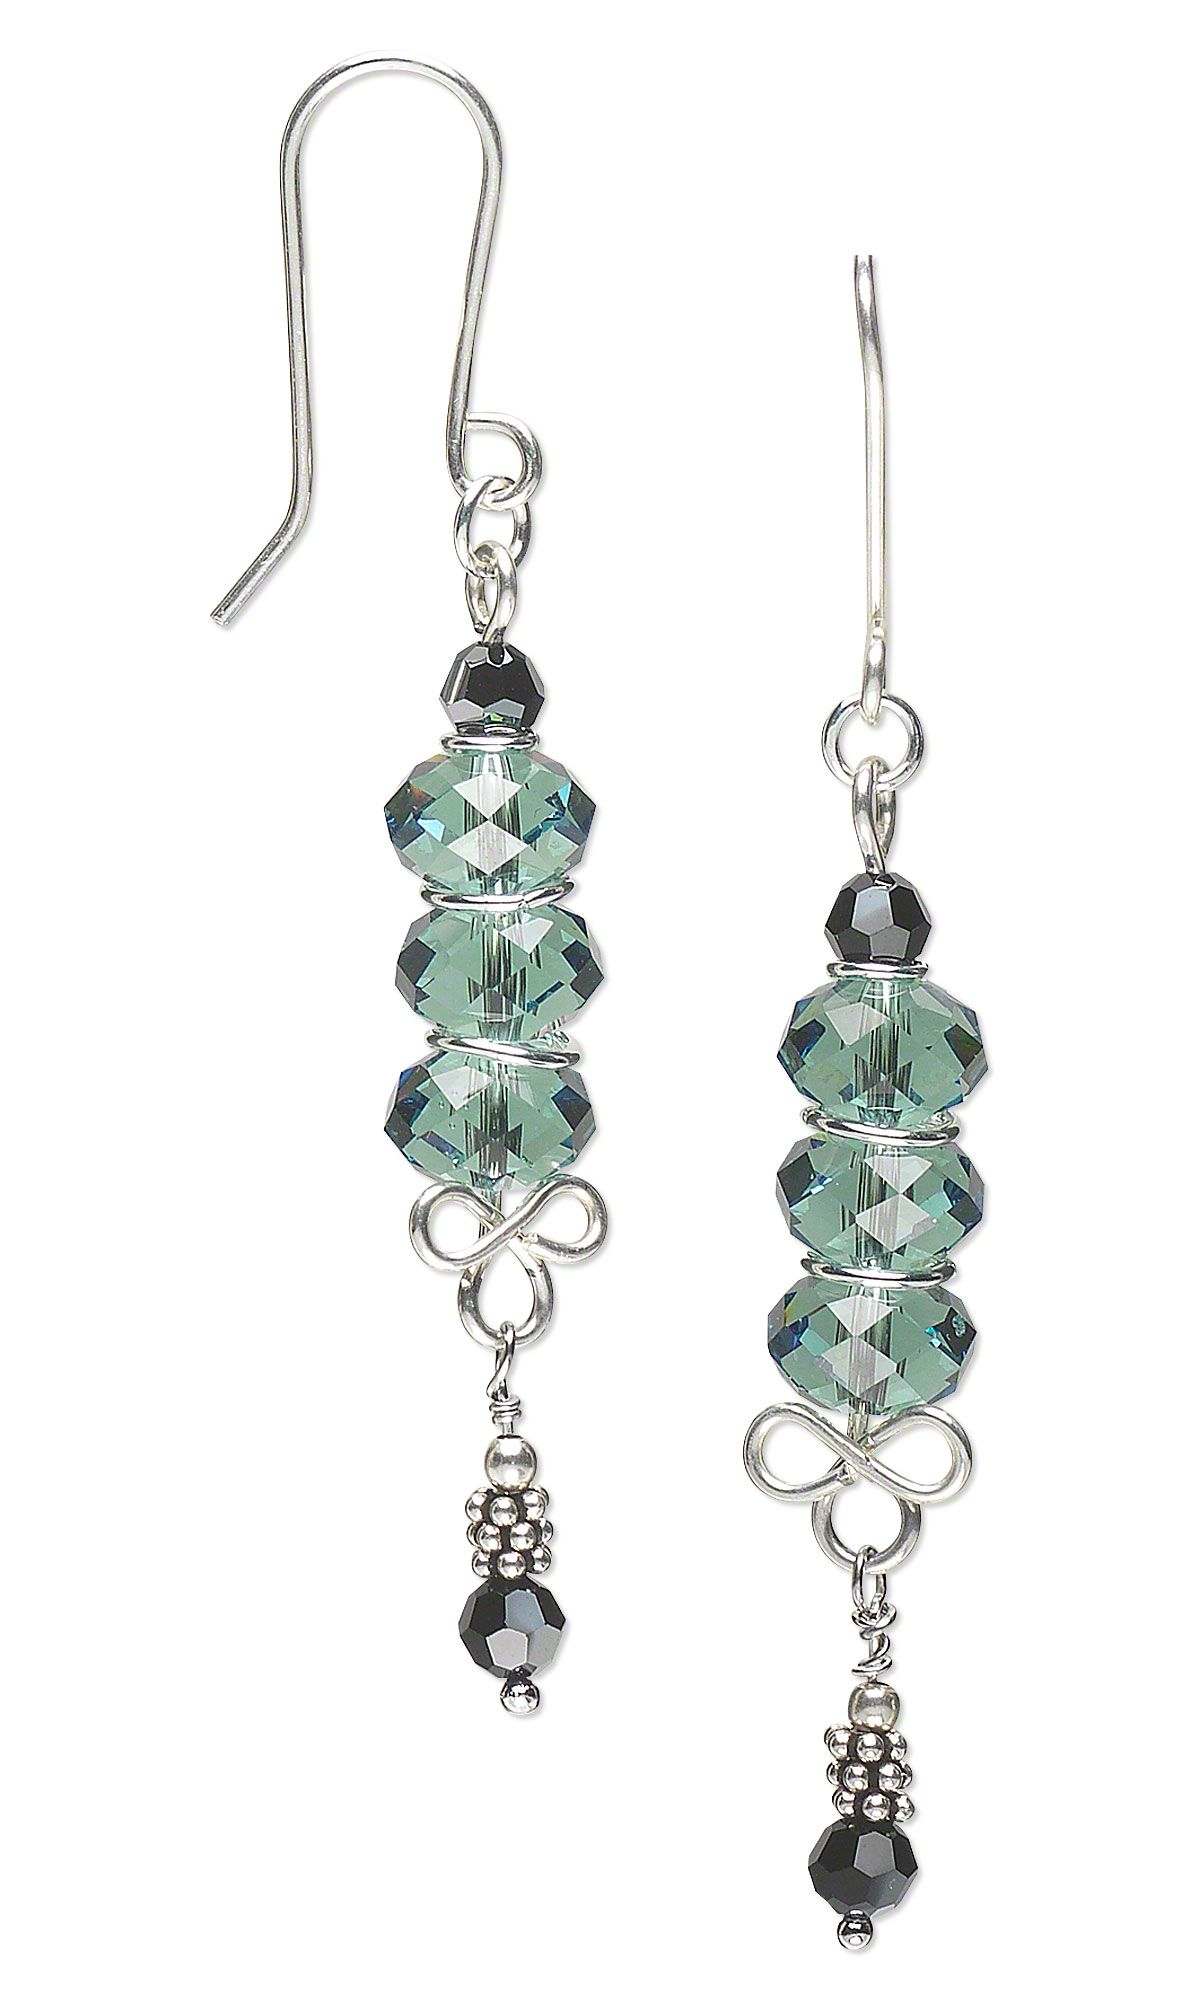 Jewelry Design Earrings With Swarovski Crystal Beads Sterling Silver And Wirework Fire